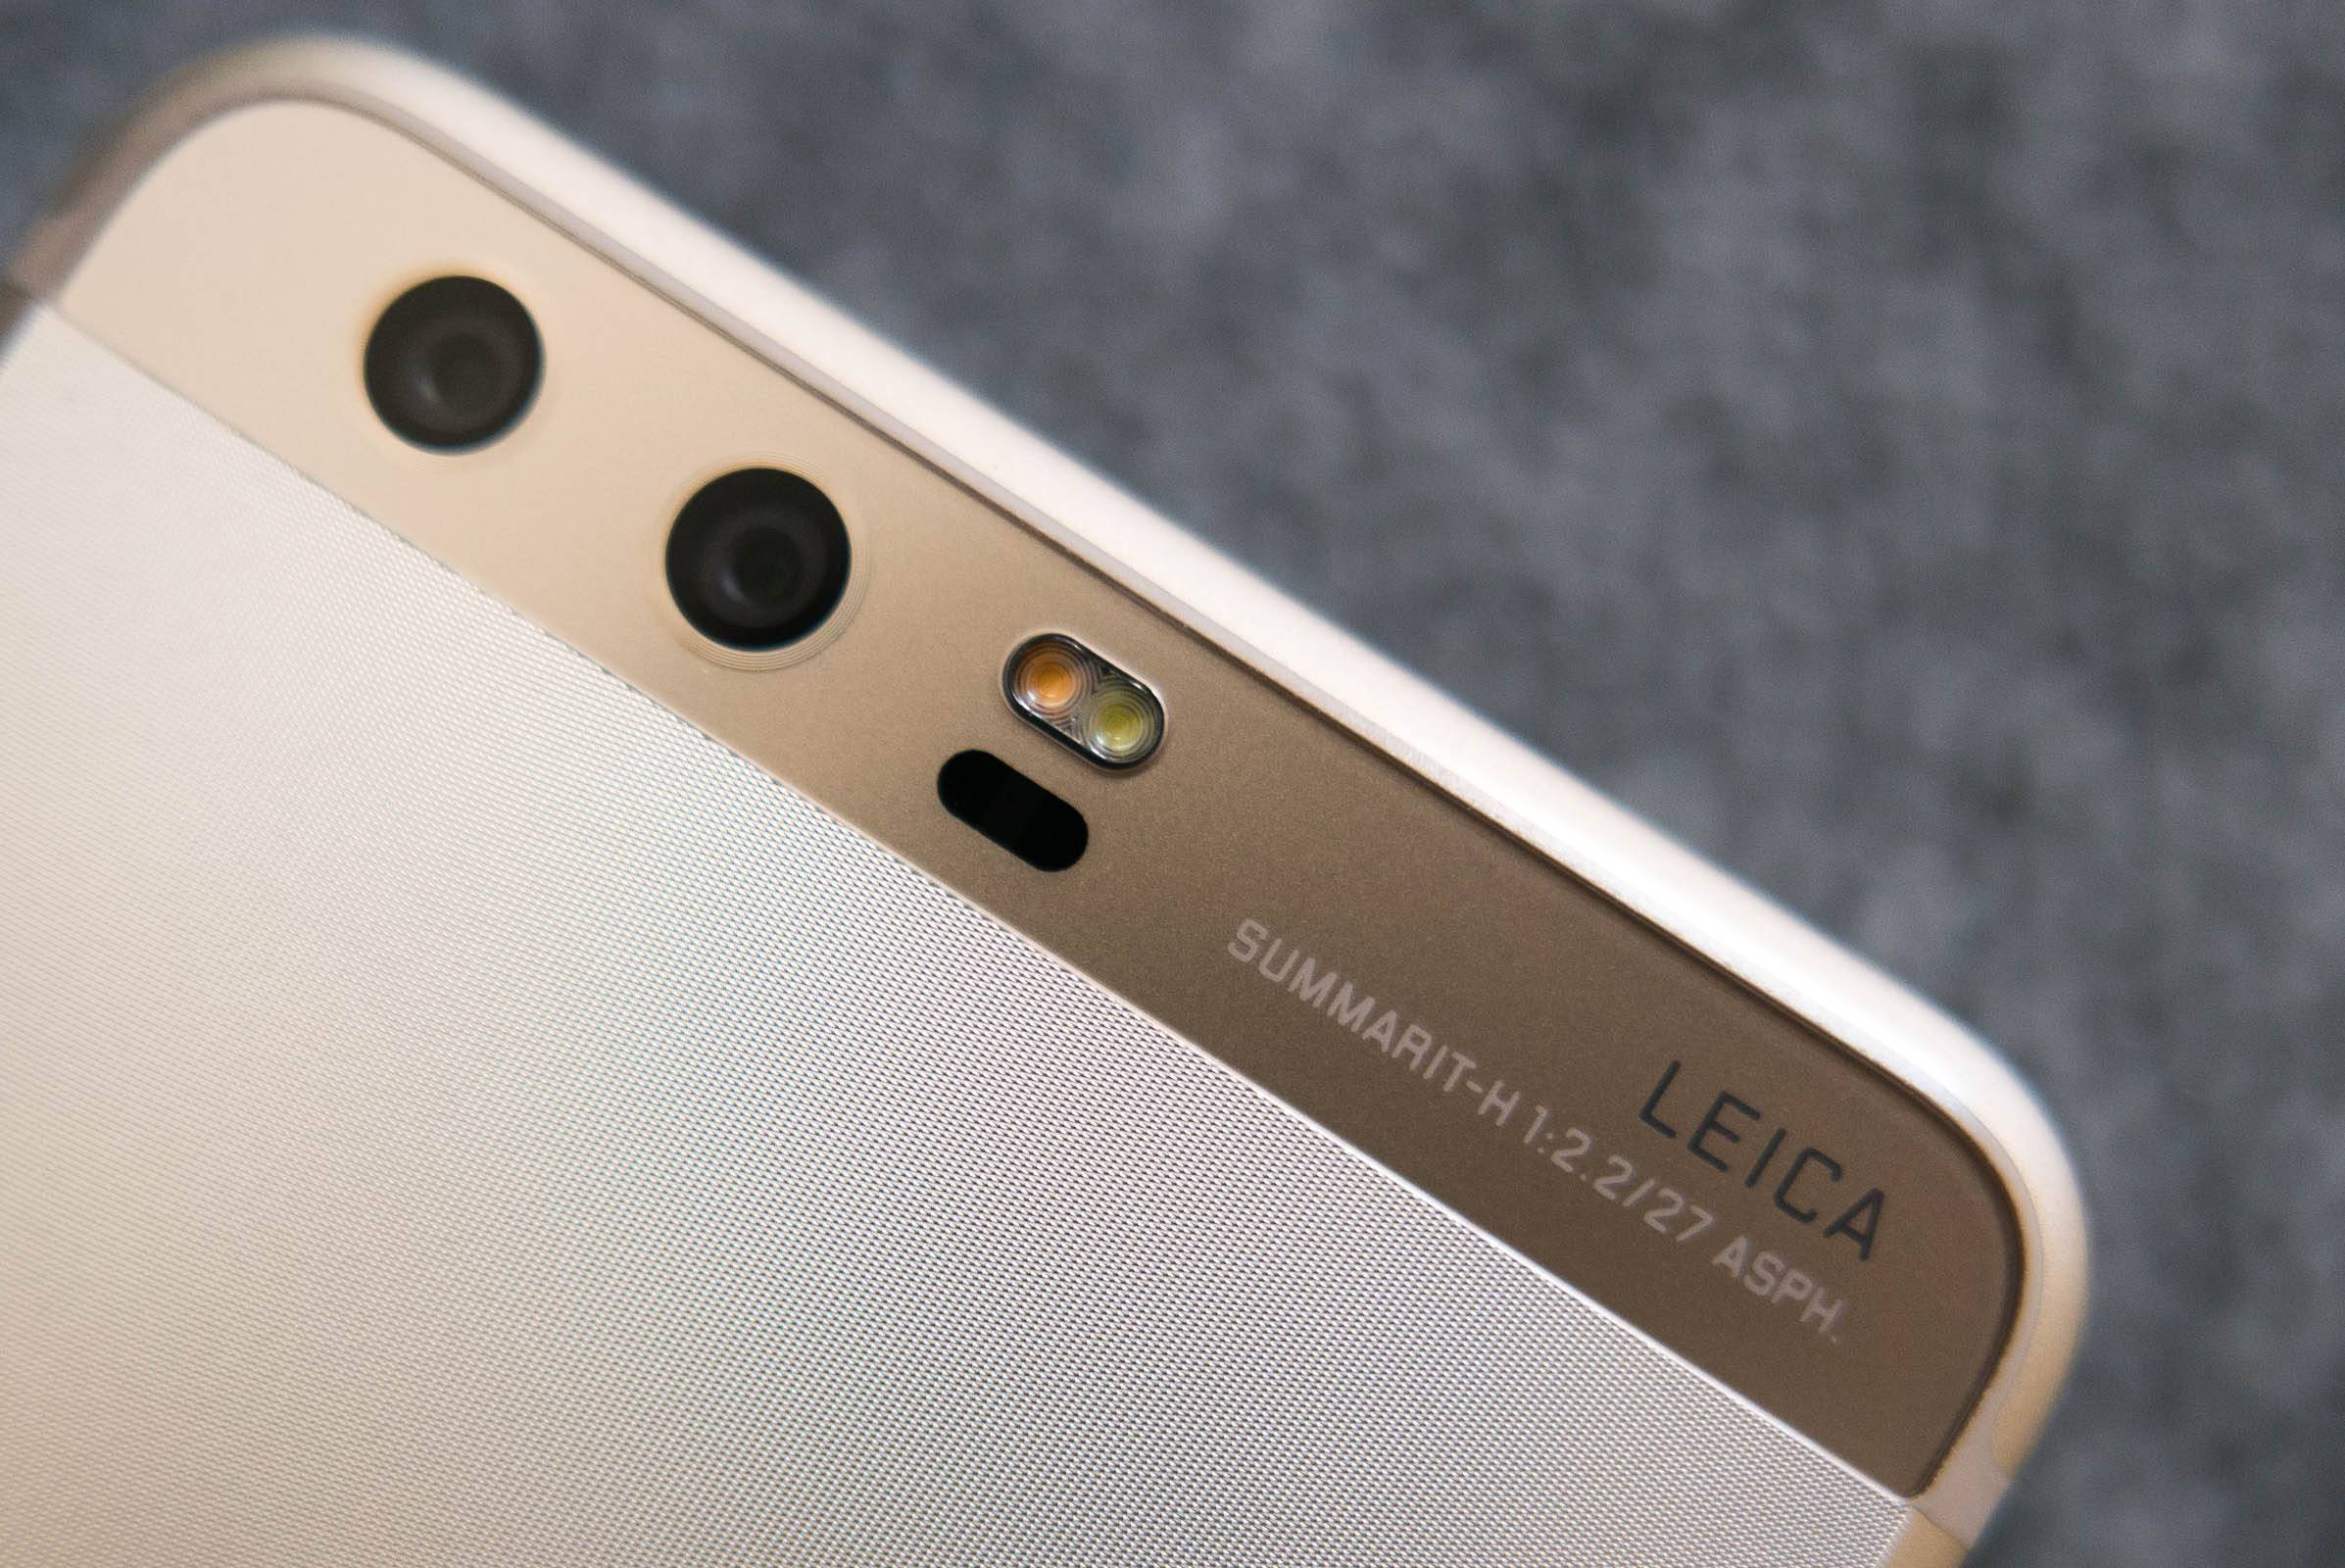 huawei P10 gold version Photo By Hao Ying-12